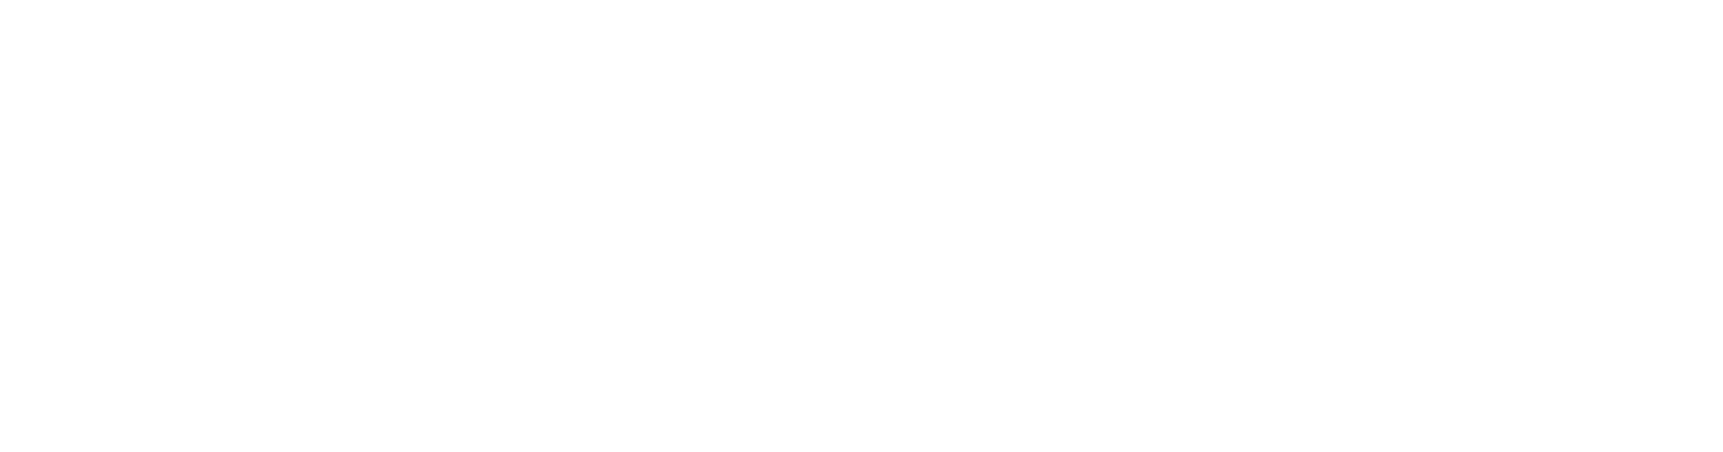 Film | Video | Beeldmeester Films